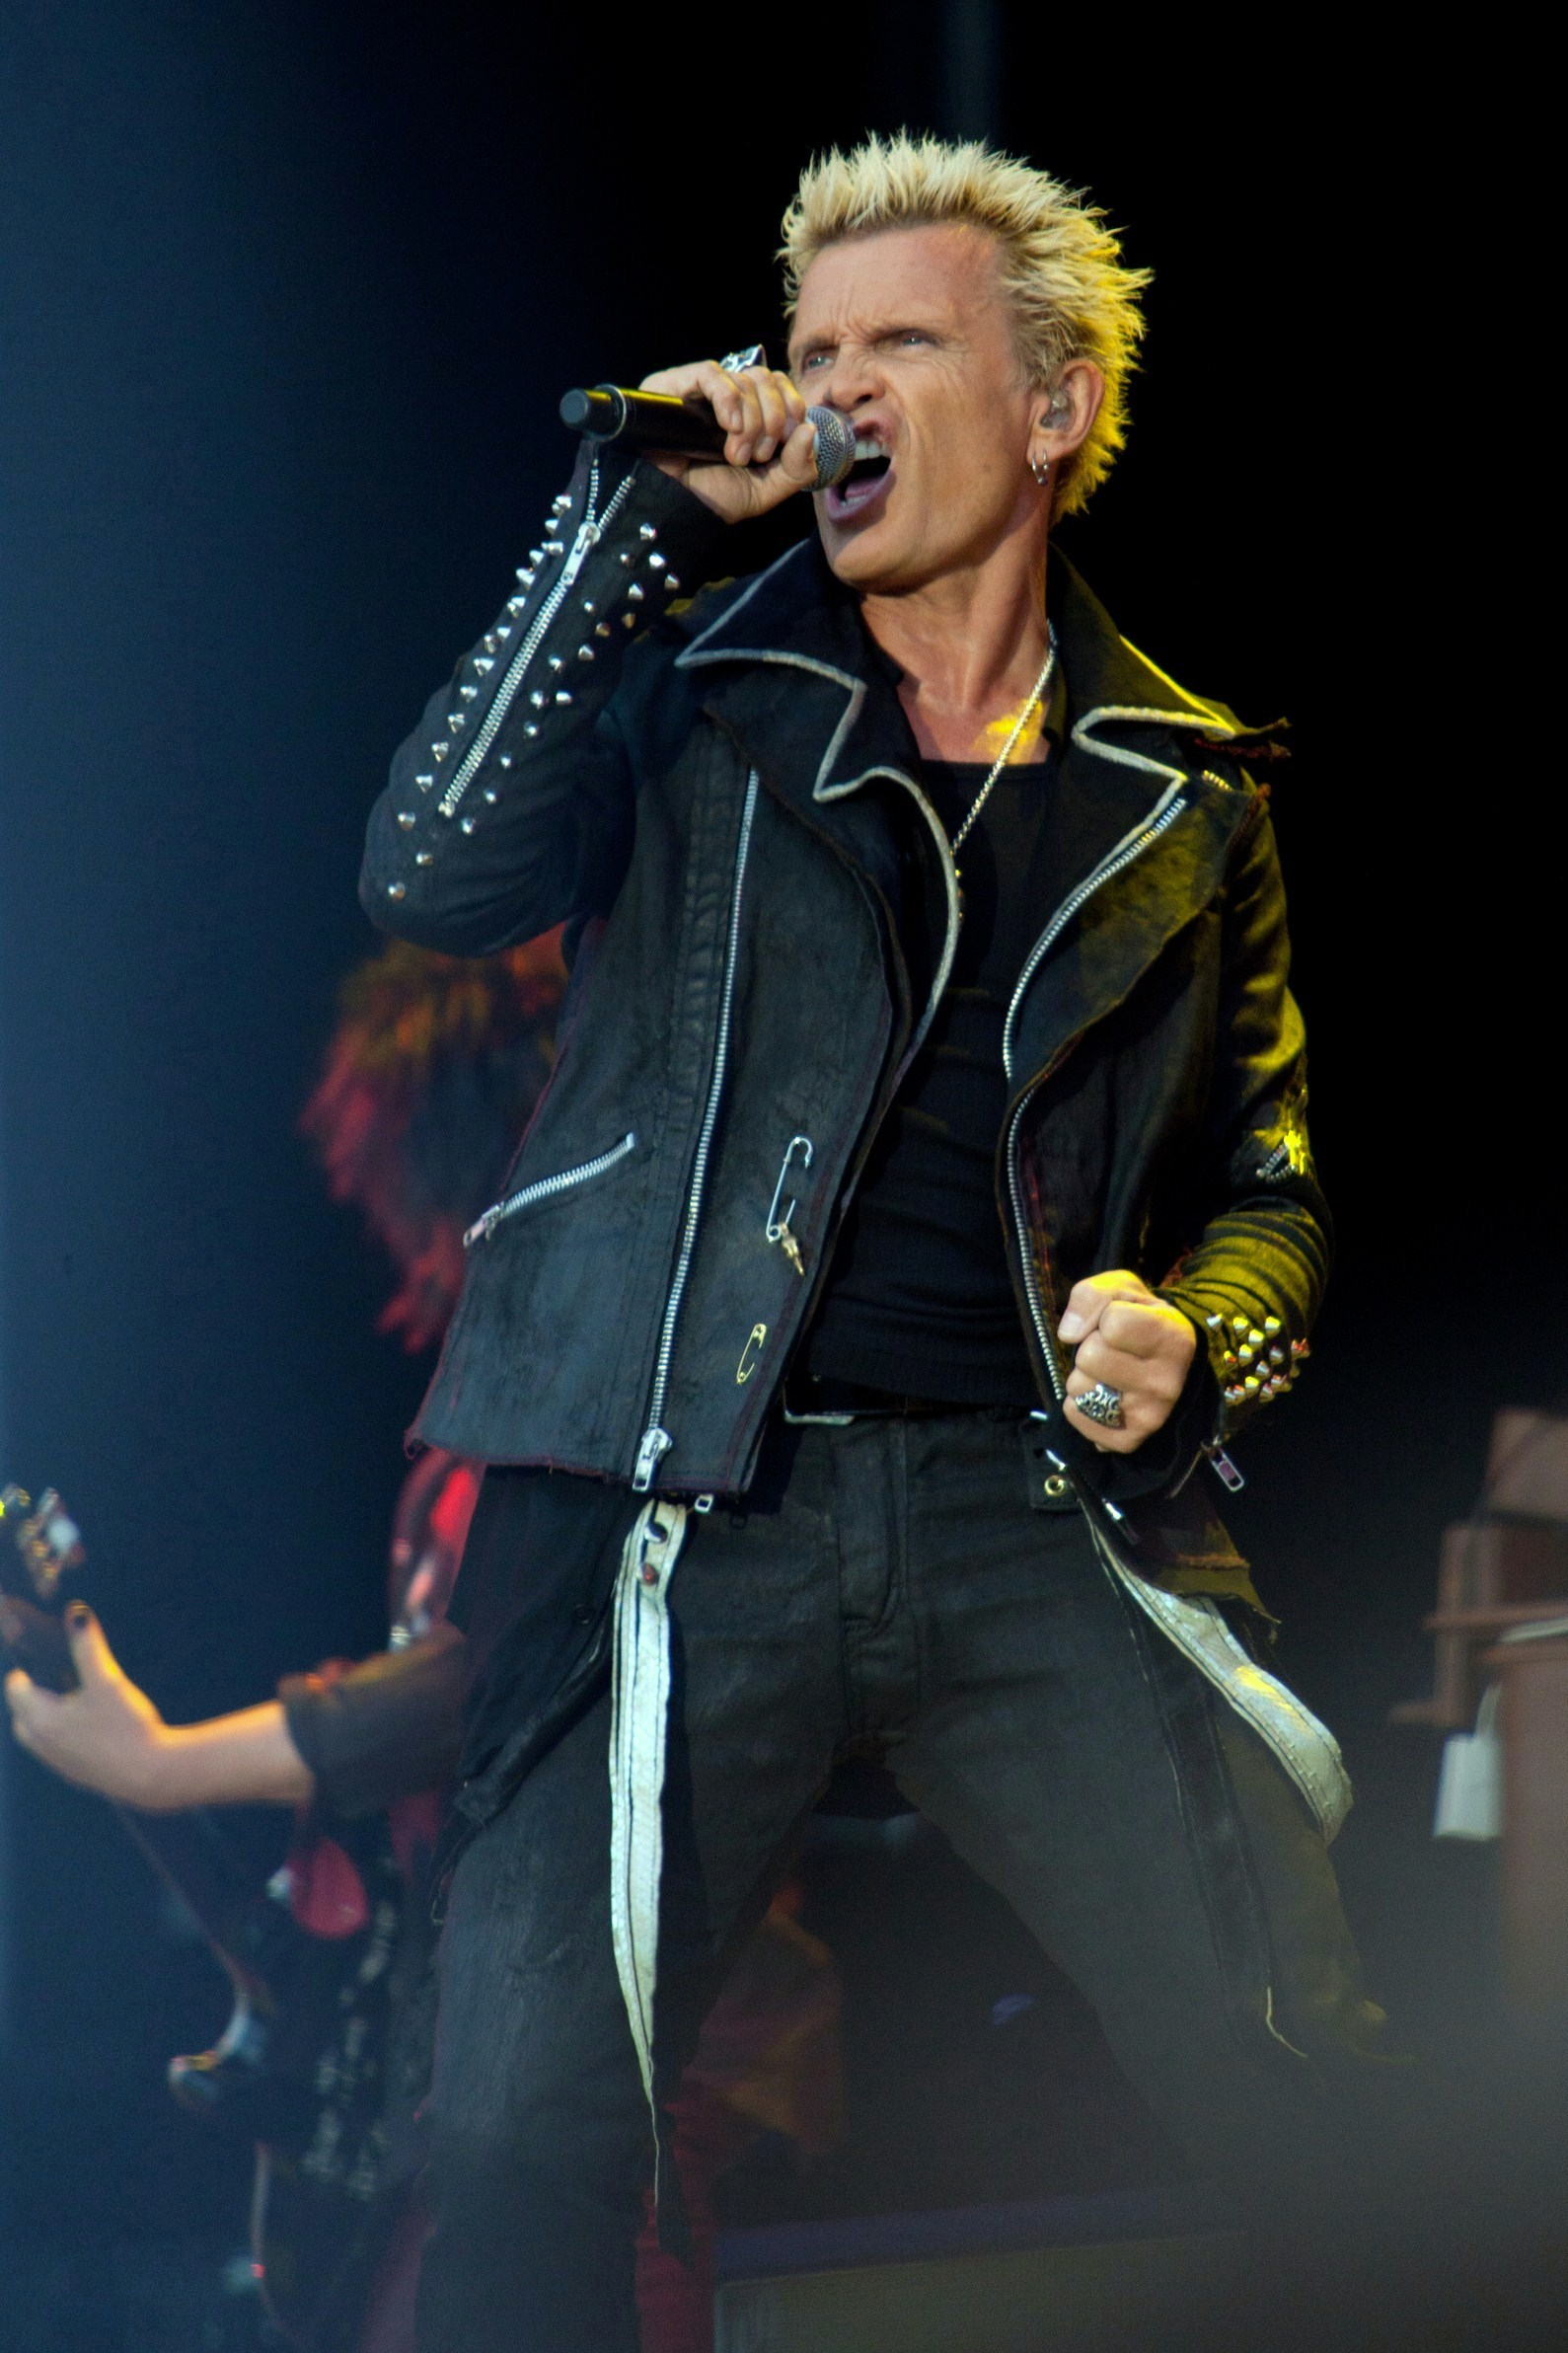 Billy Idol Wikipedia